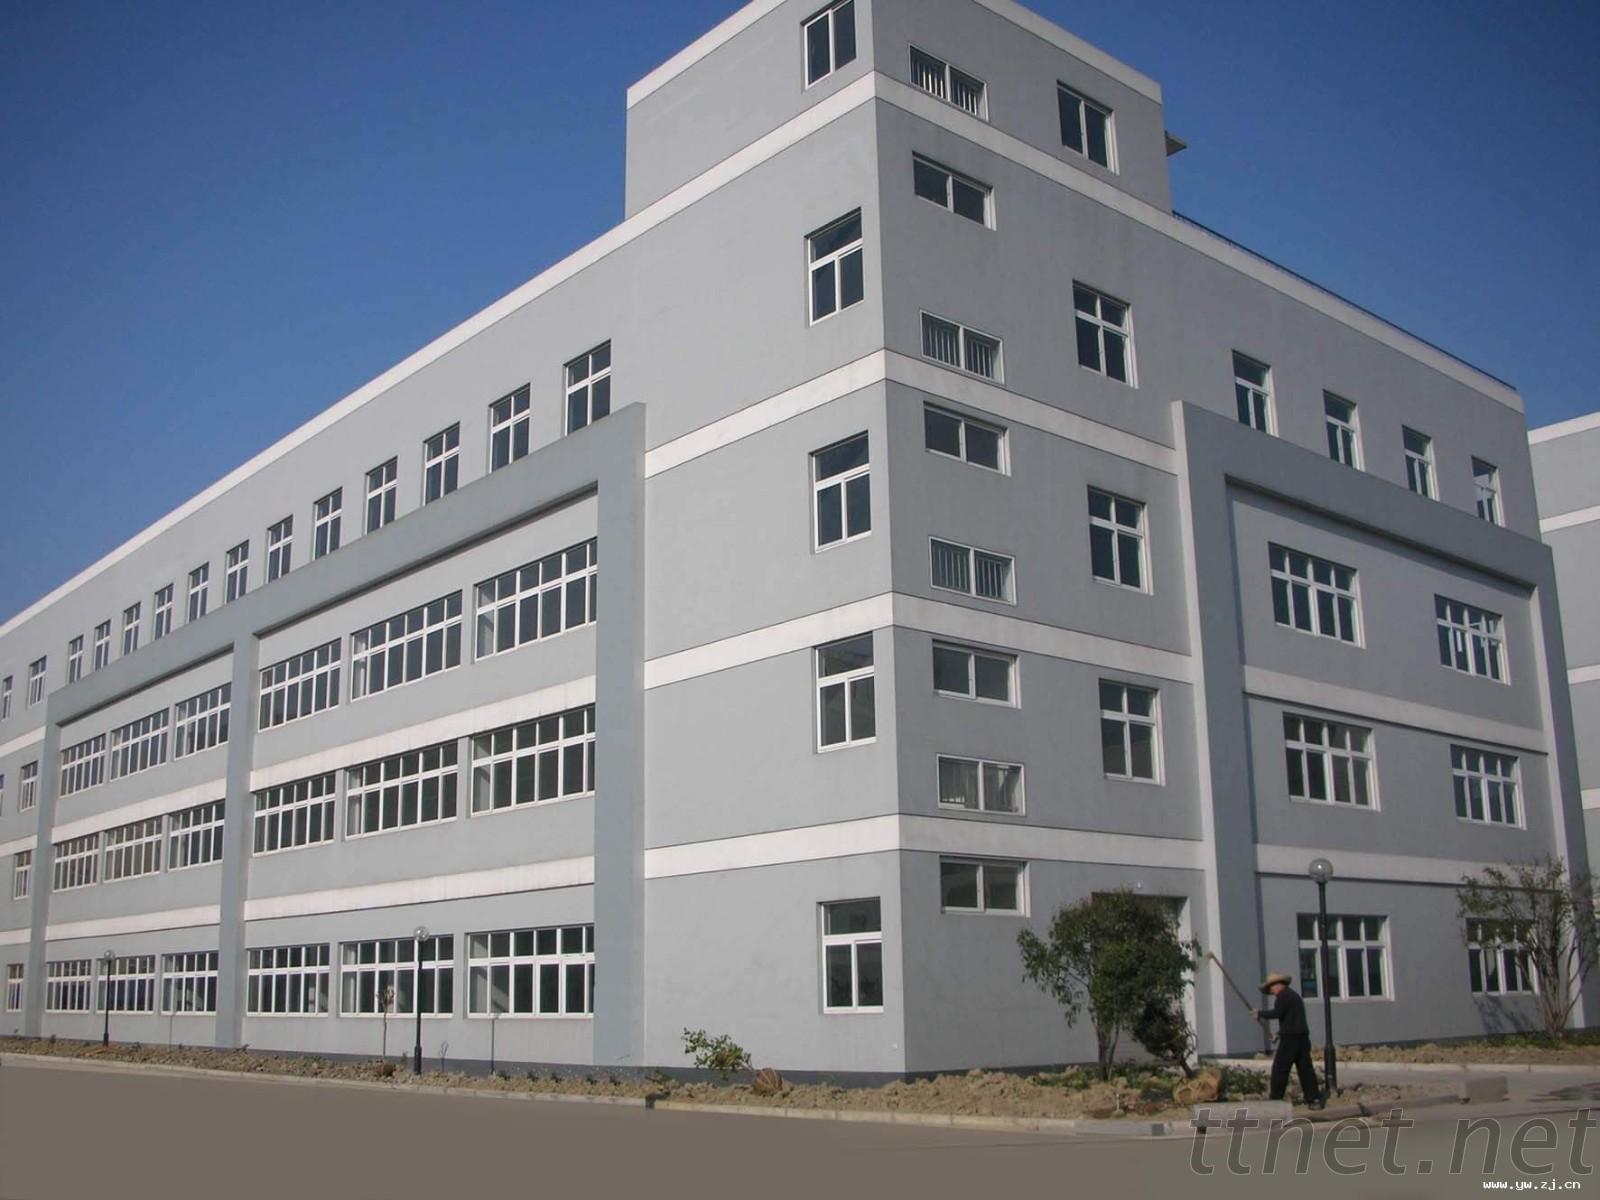 Suzhou Jingge Electronics Co., Ltd